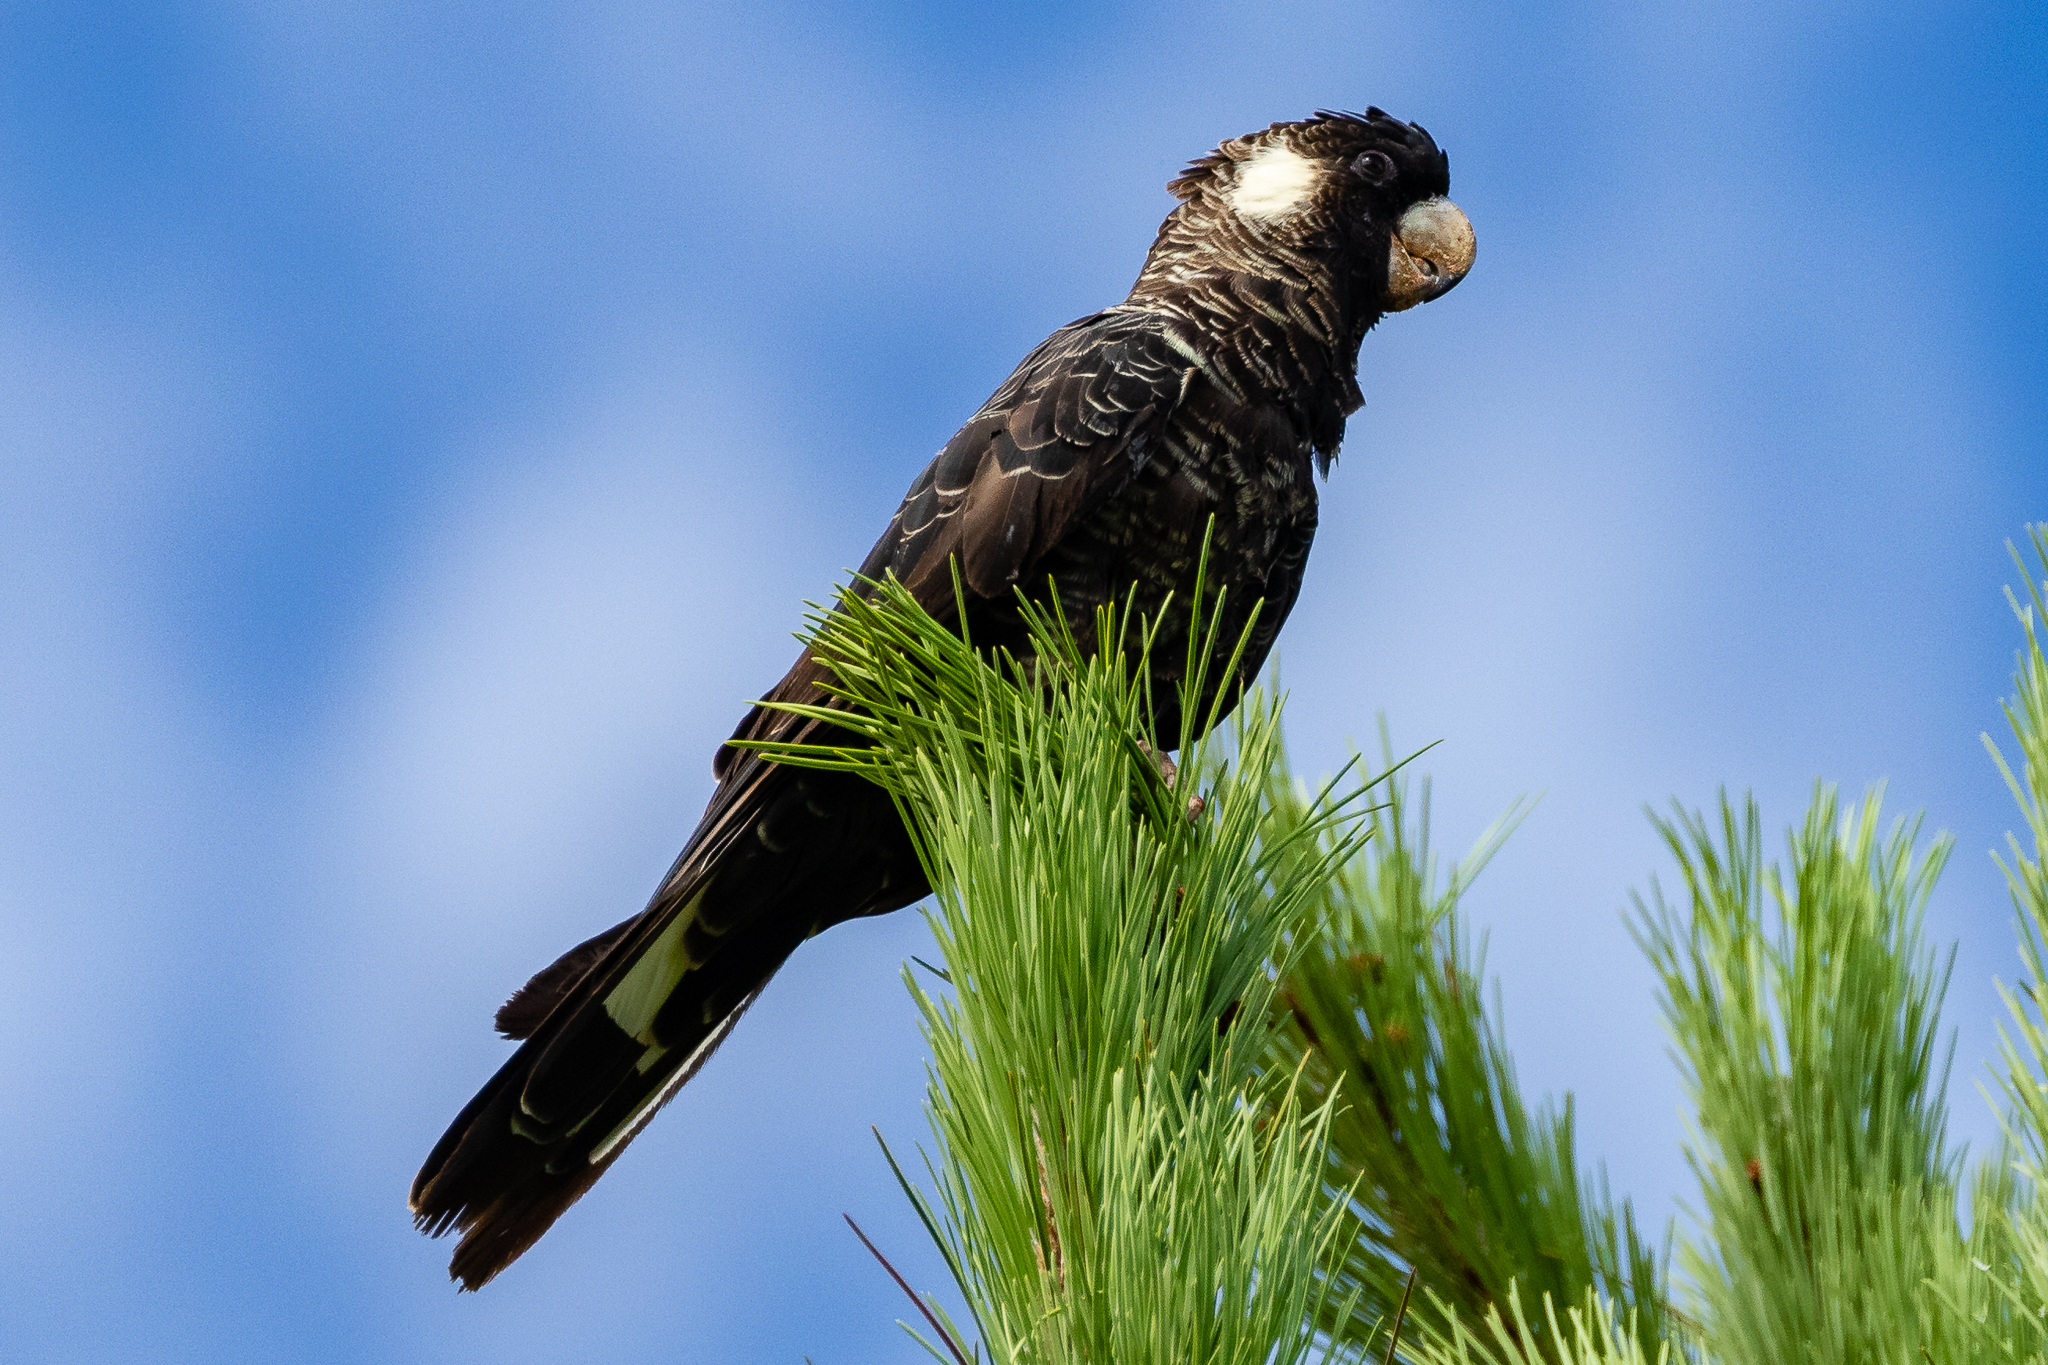 Carnaby's Black-Cockatoo (60 cm) is also known as the Short-billed Black-Cockatoo. This distinguishes it from that other rare and endangered resident of the south-west, Baudin's Black-Cockatoo, descriptively named the Long-billed Black-Cockatoo.